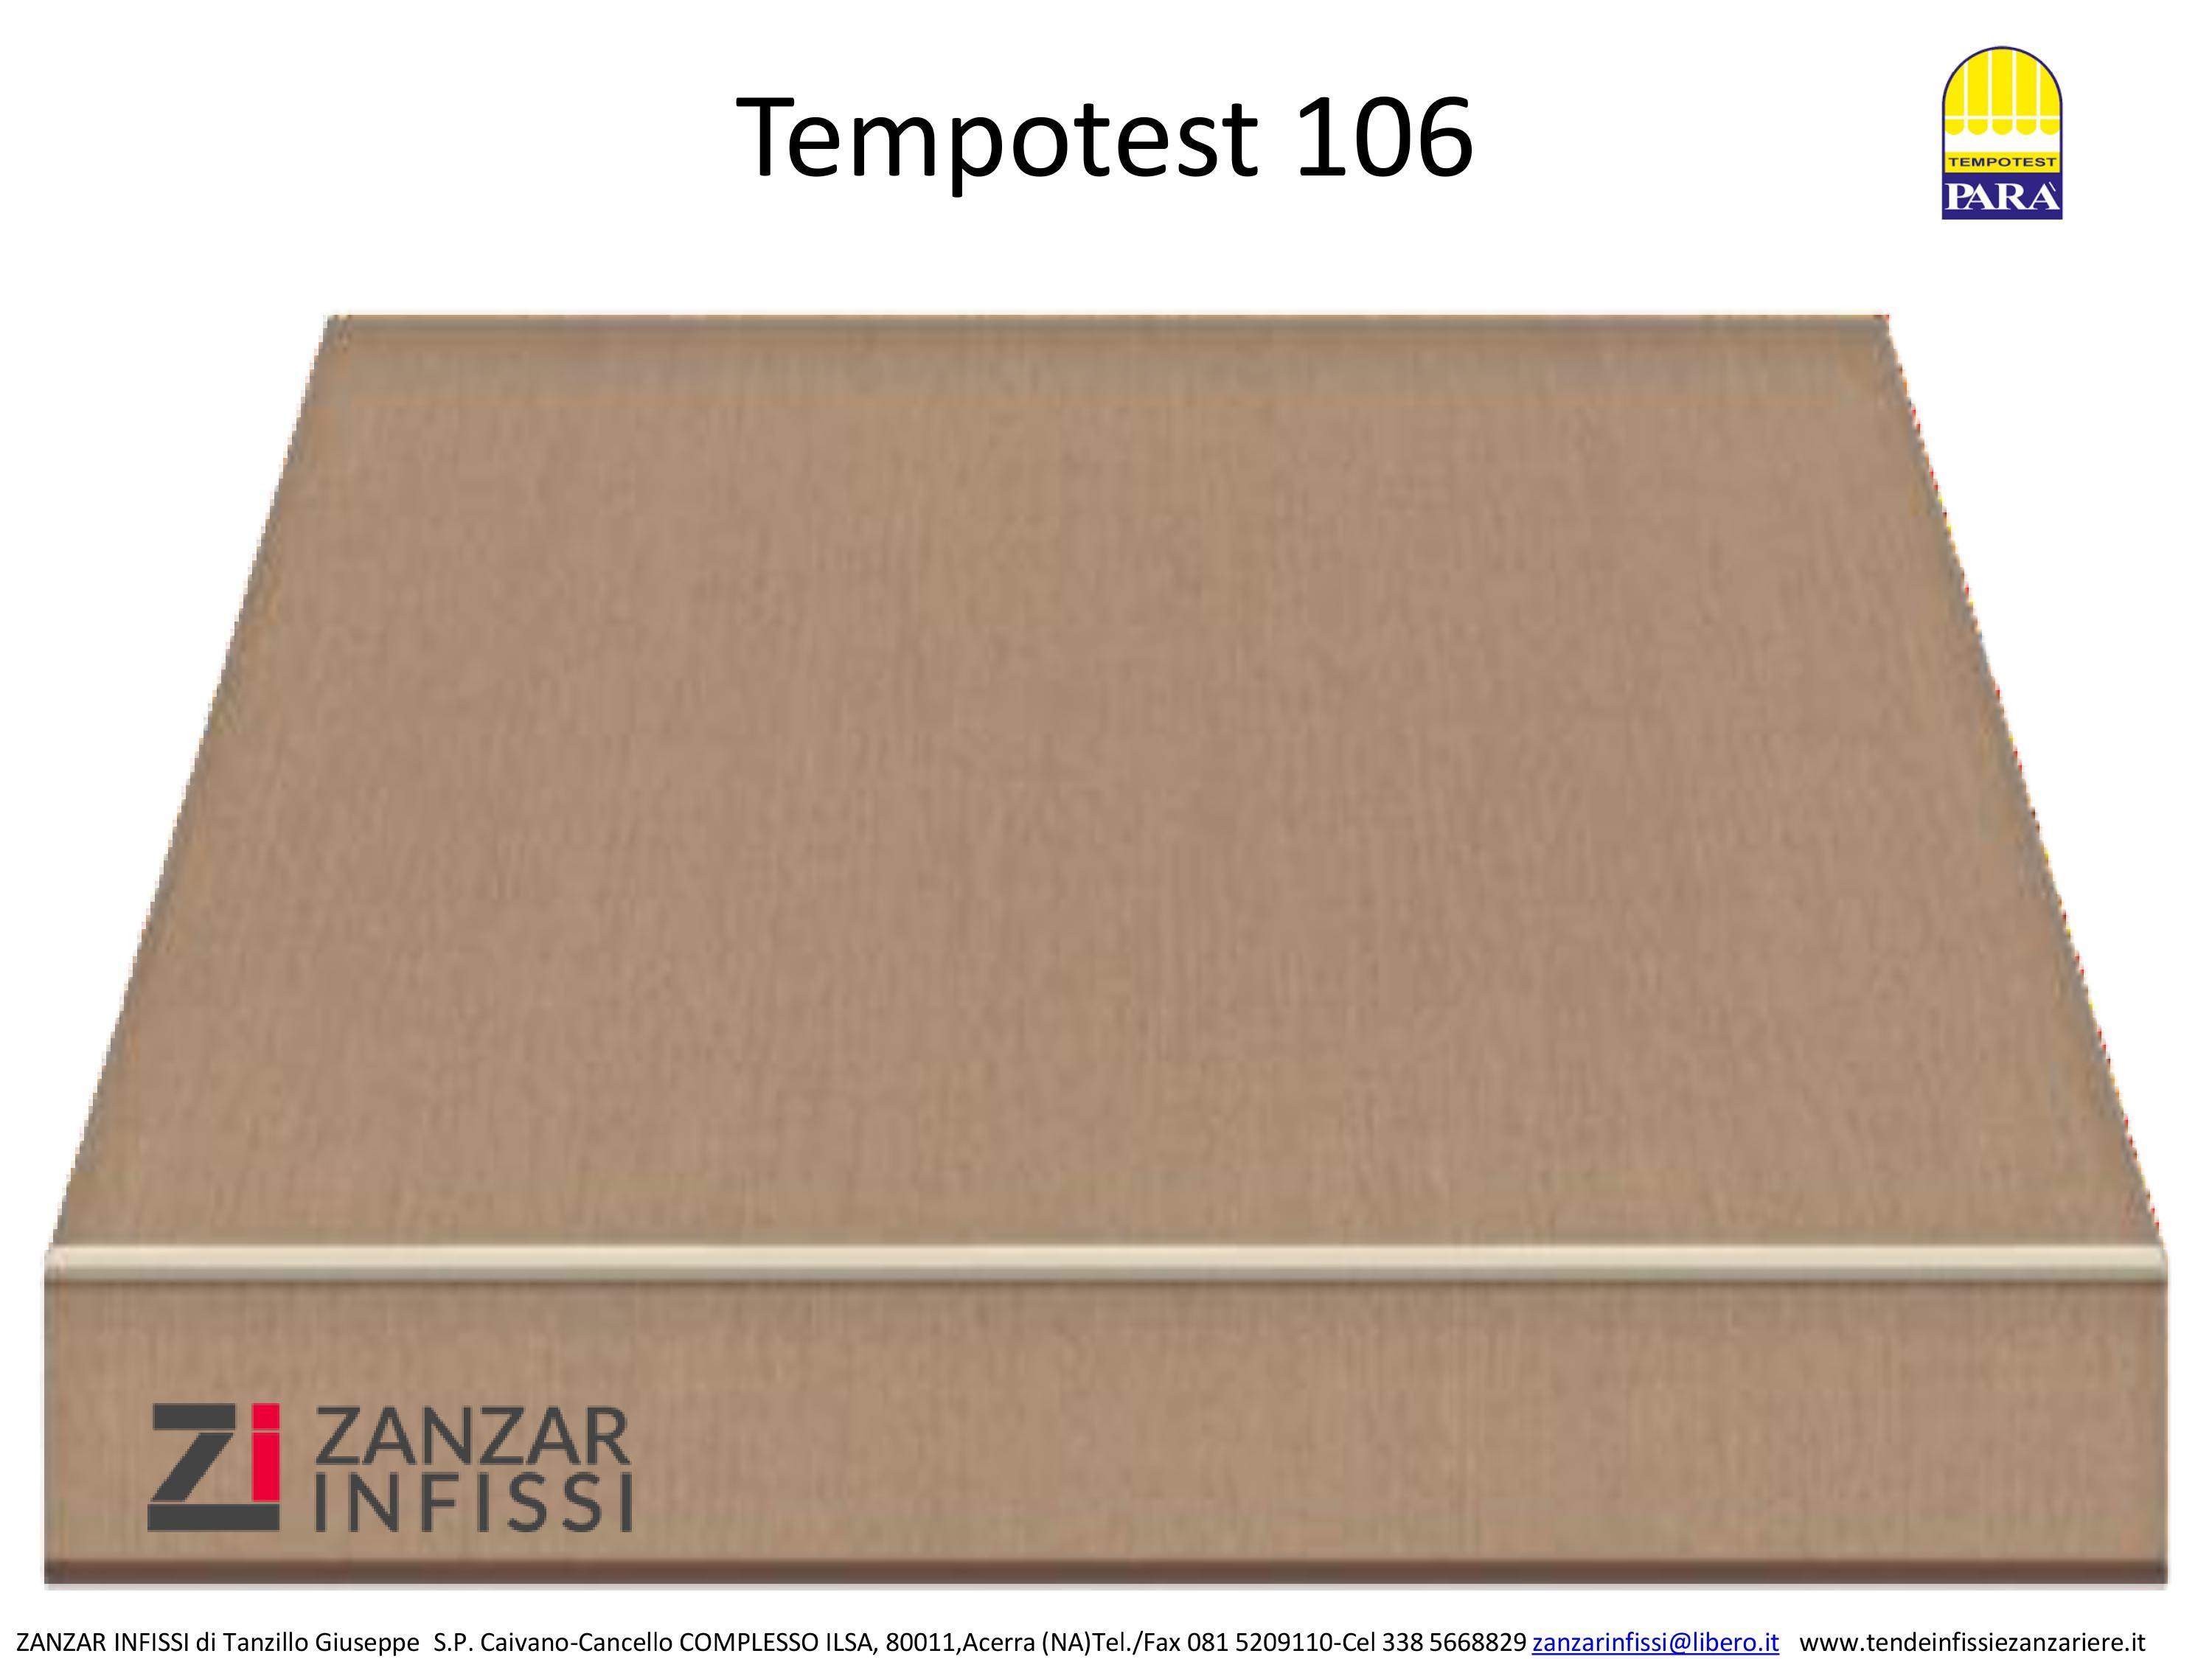 Tempotest 106